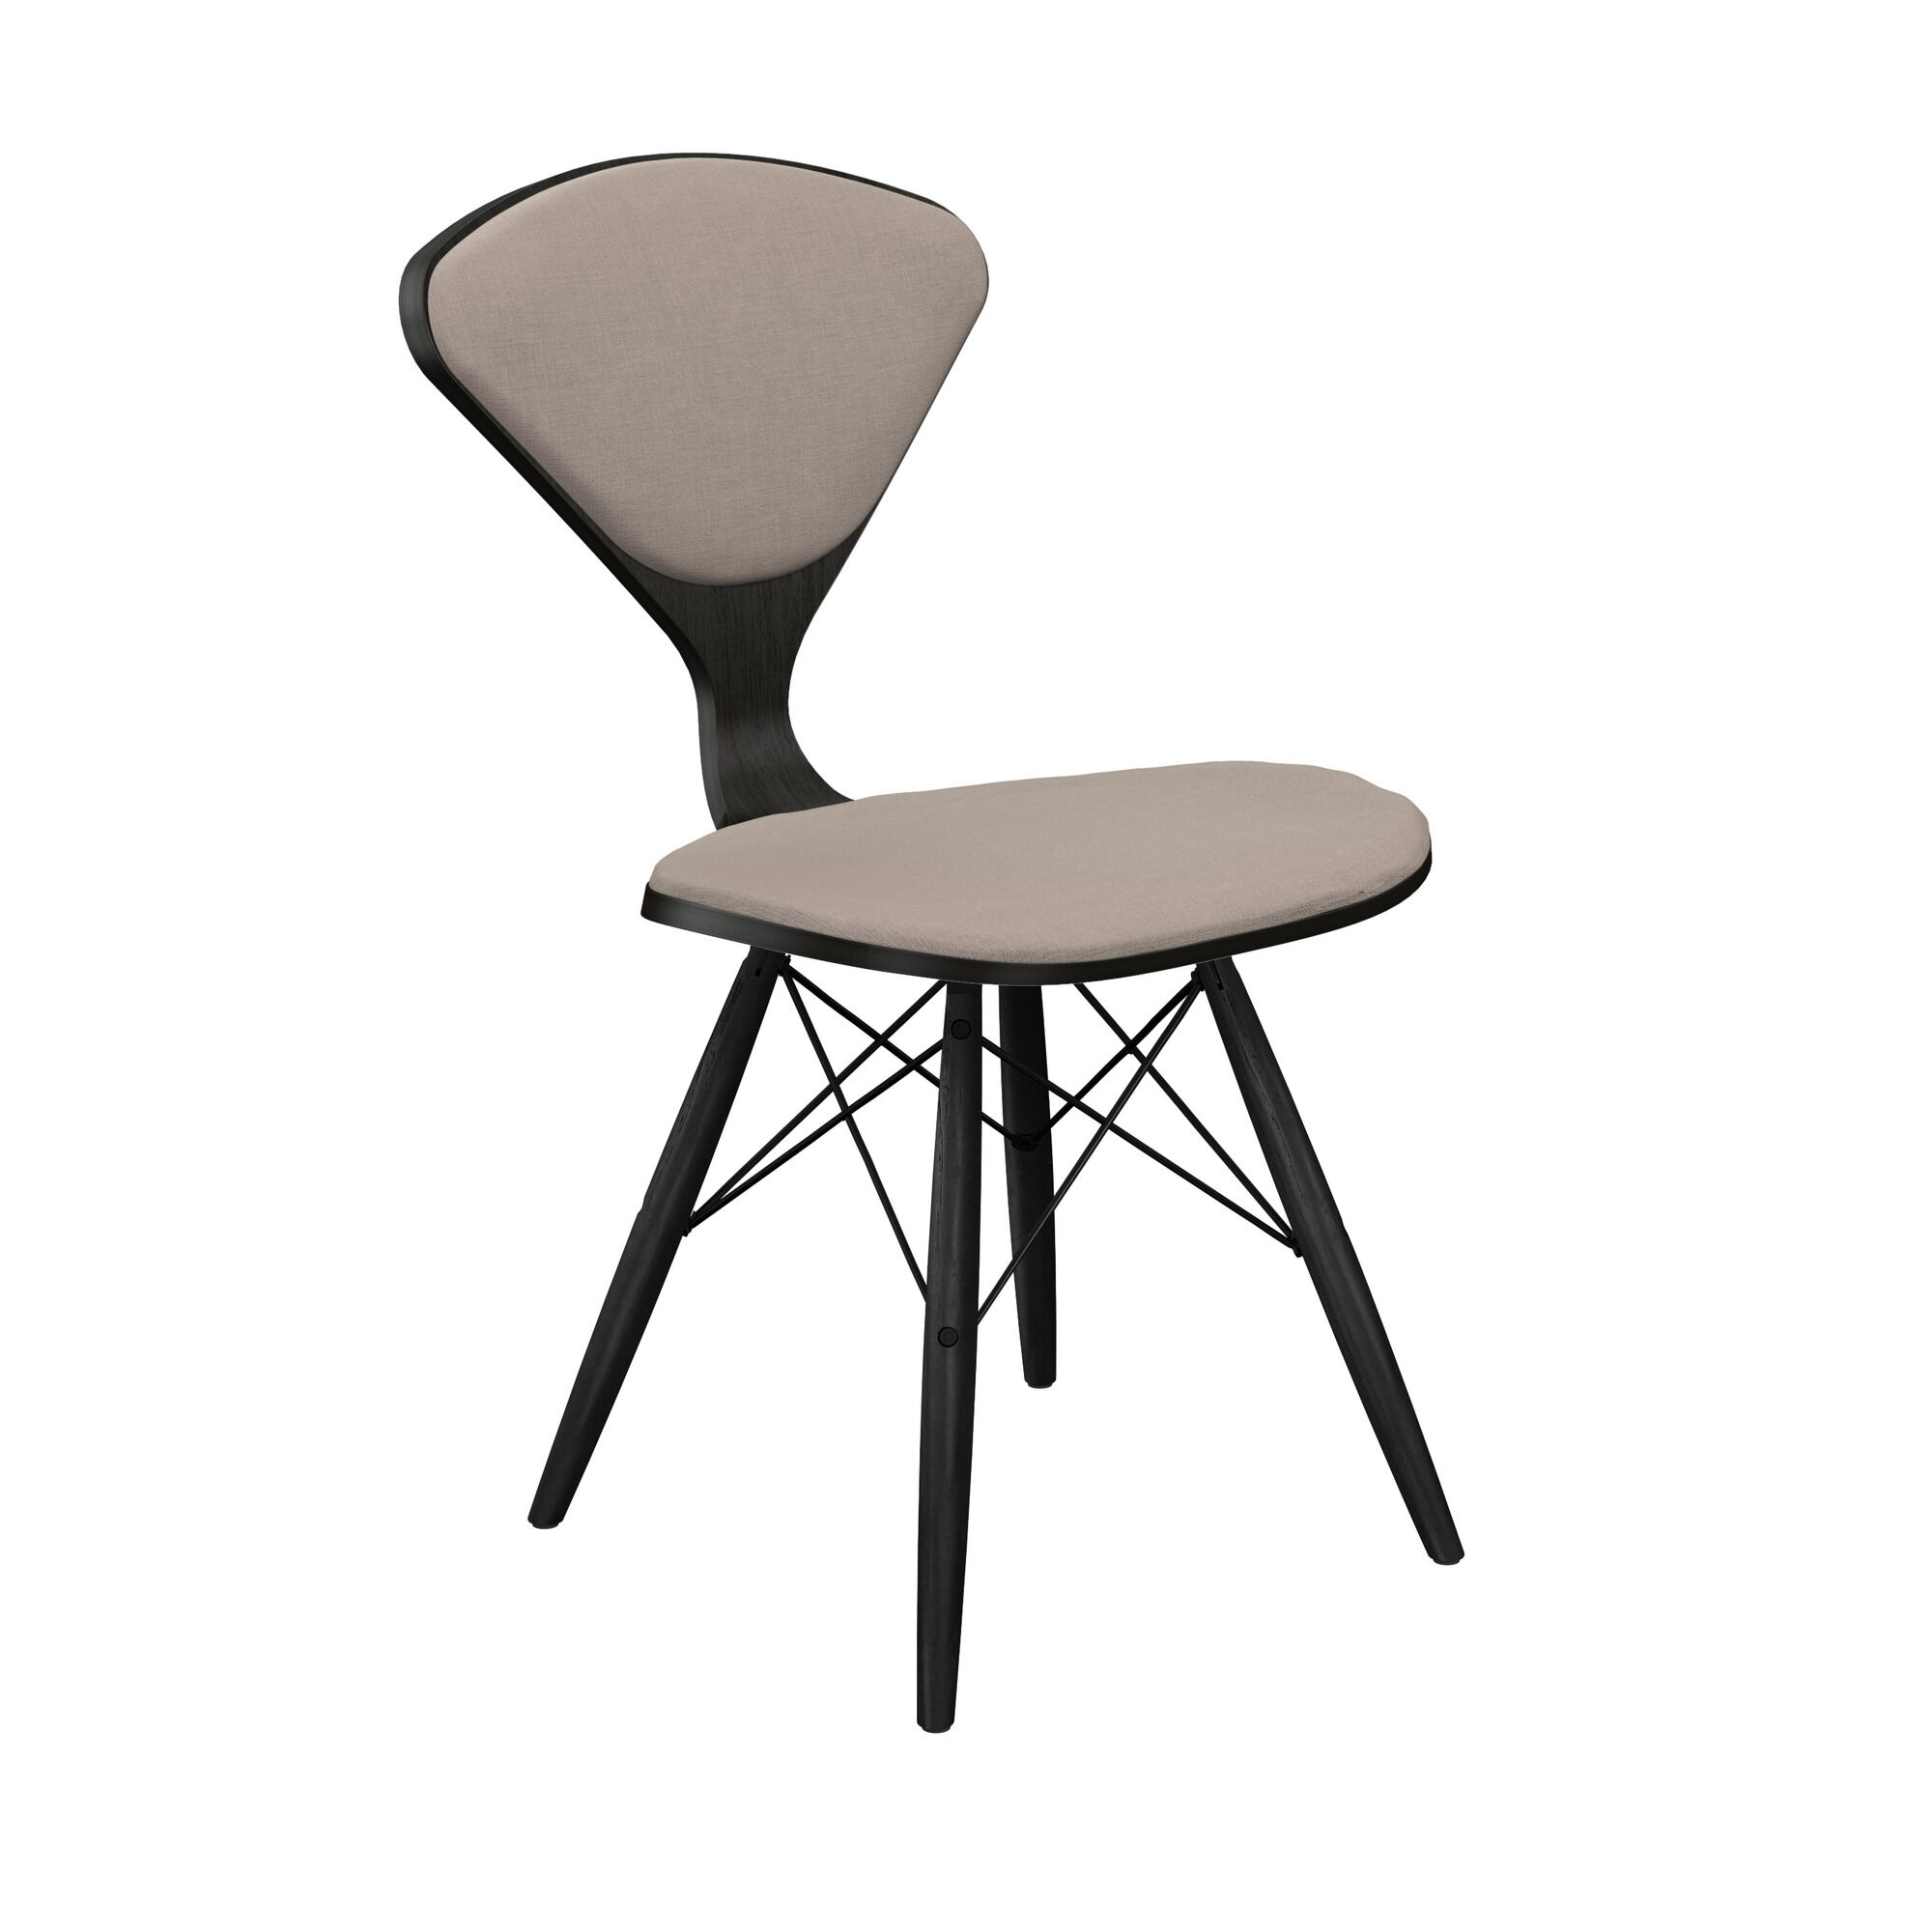 Tynan Dining Chair Frame Color: Black/Black, Upholstery Color: Light Warm Gray